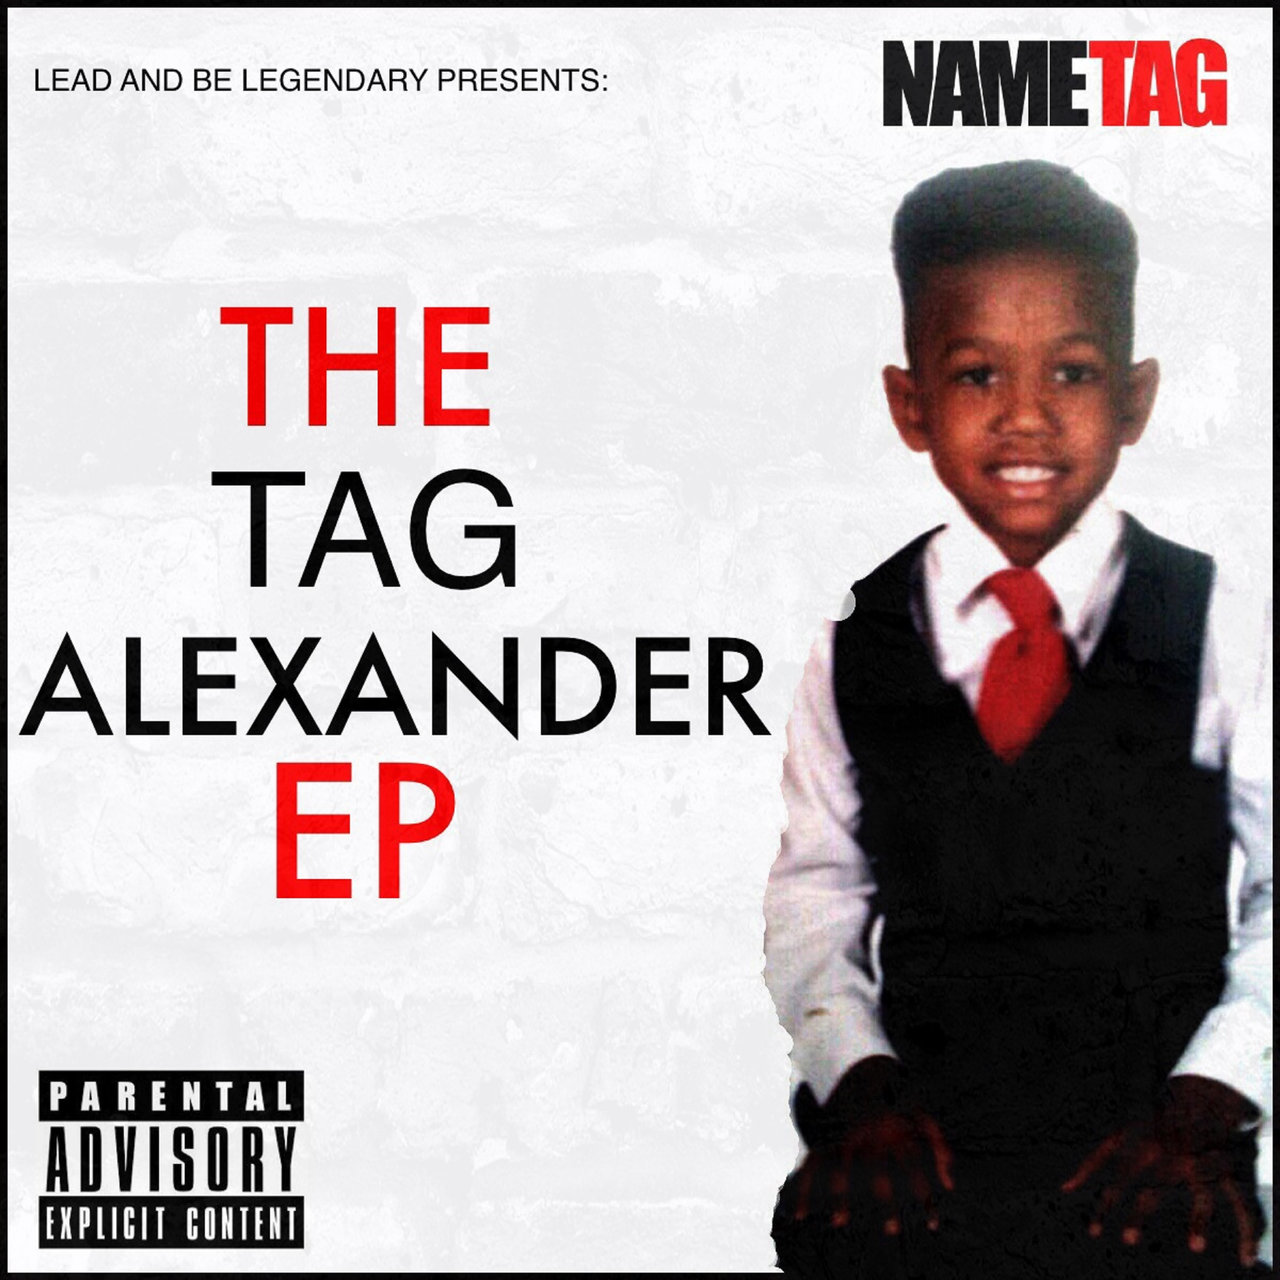 The Tag Alexander EP